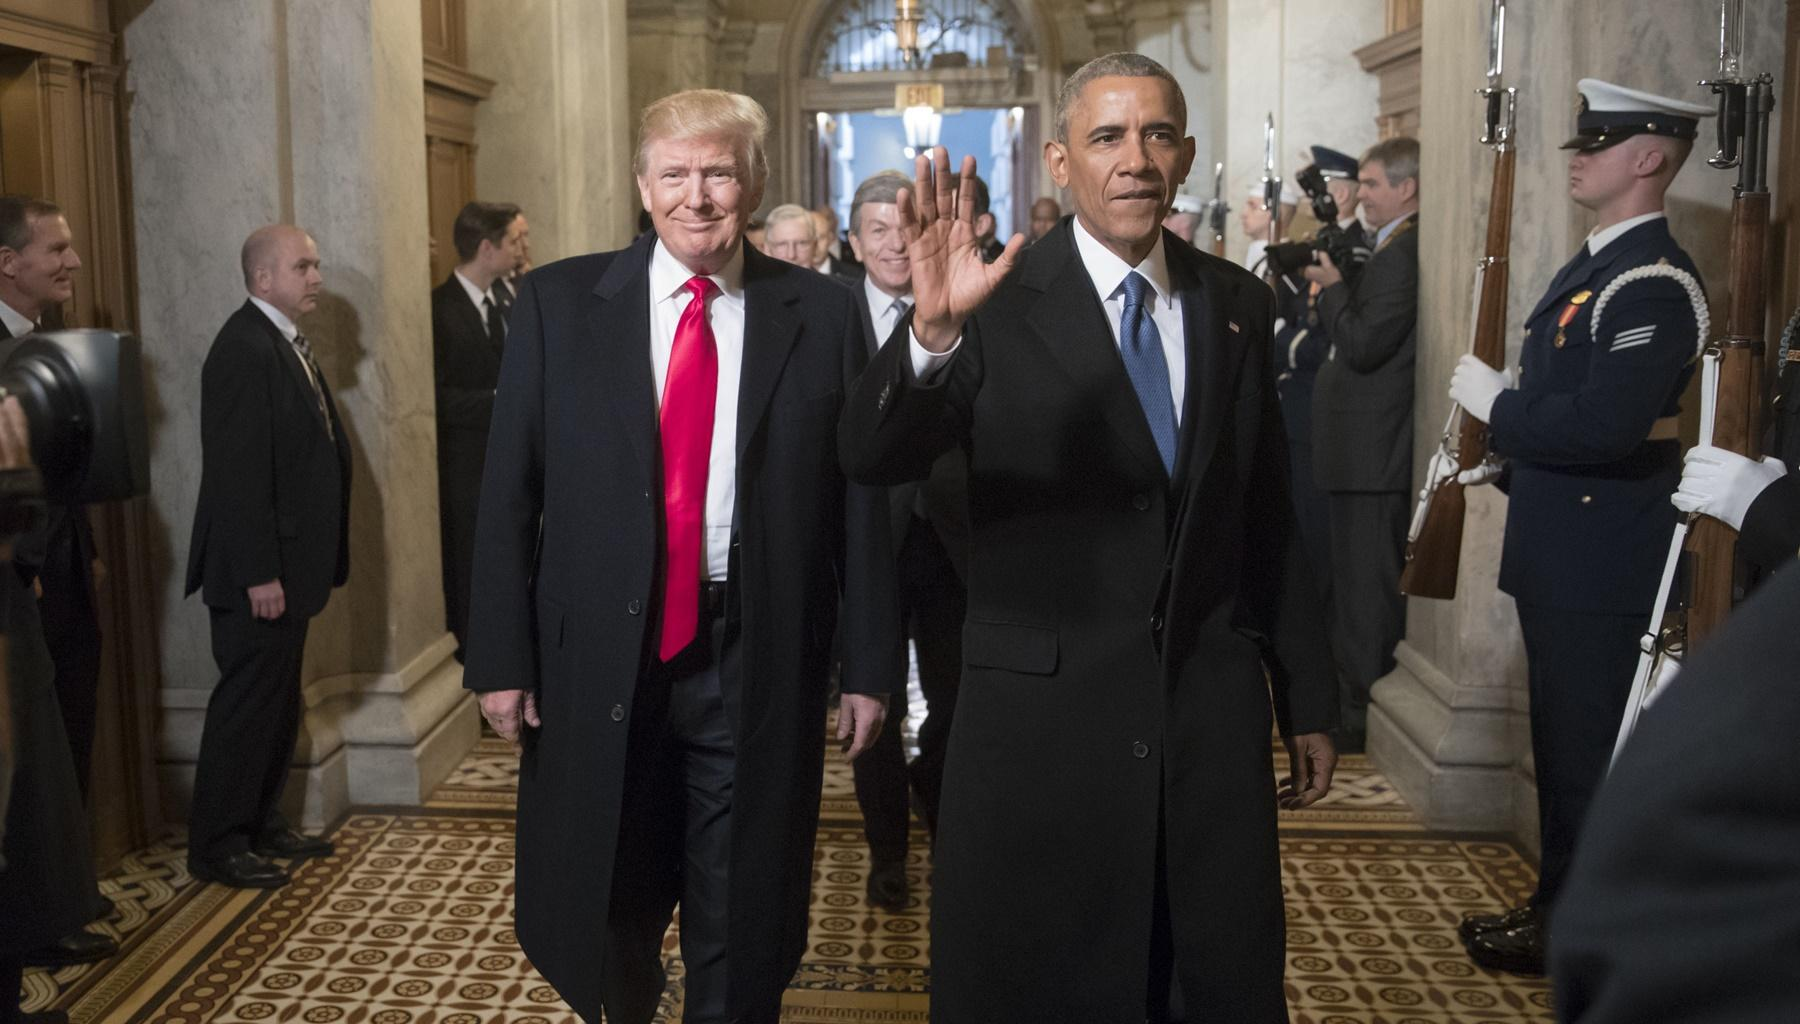 Presidents Barack Obama And Donald Trump Have Shockingly Different Reactions To Notre Dame Cathedral Fire In Paris